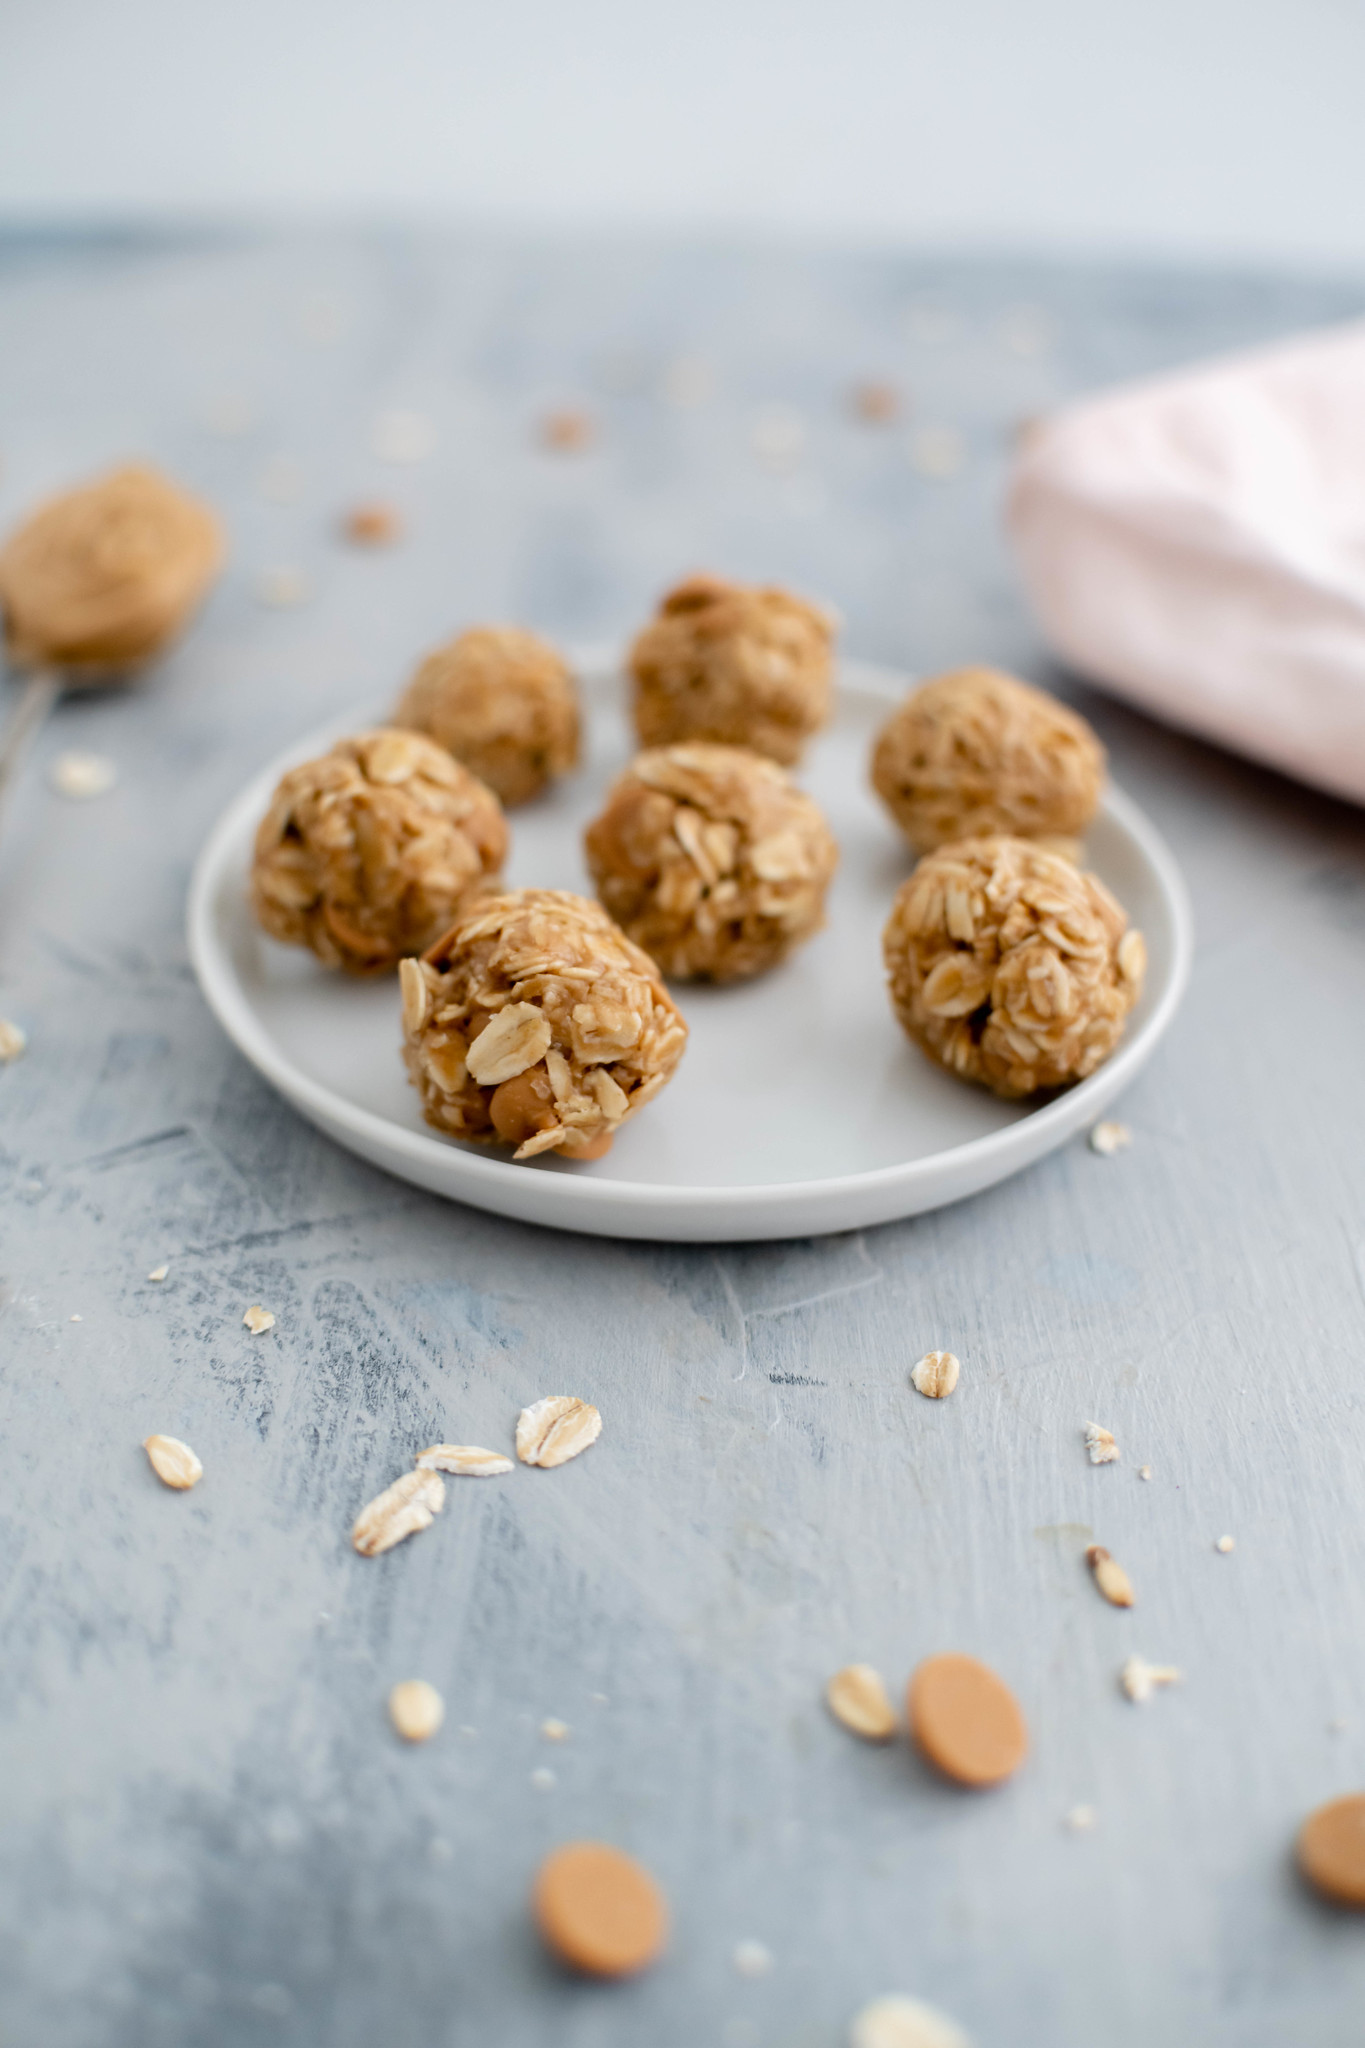 7 no bake peanut butter balls on a small white round plate. A spoonful of peanut butter in the background along with a pale pink cloth napkin.